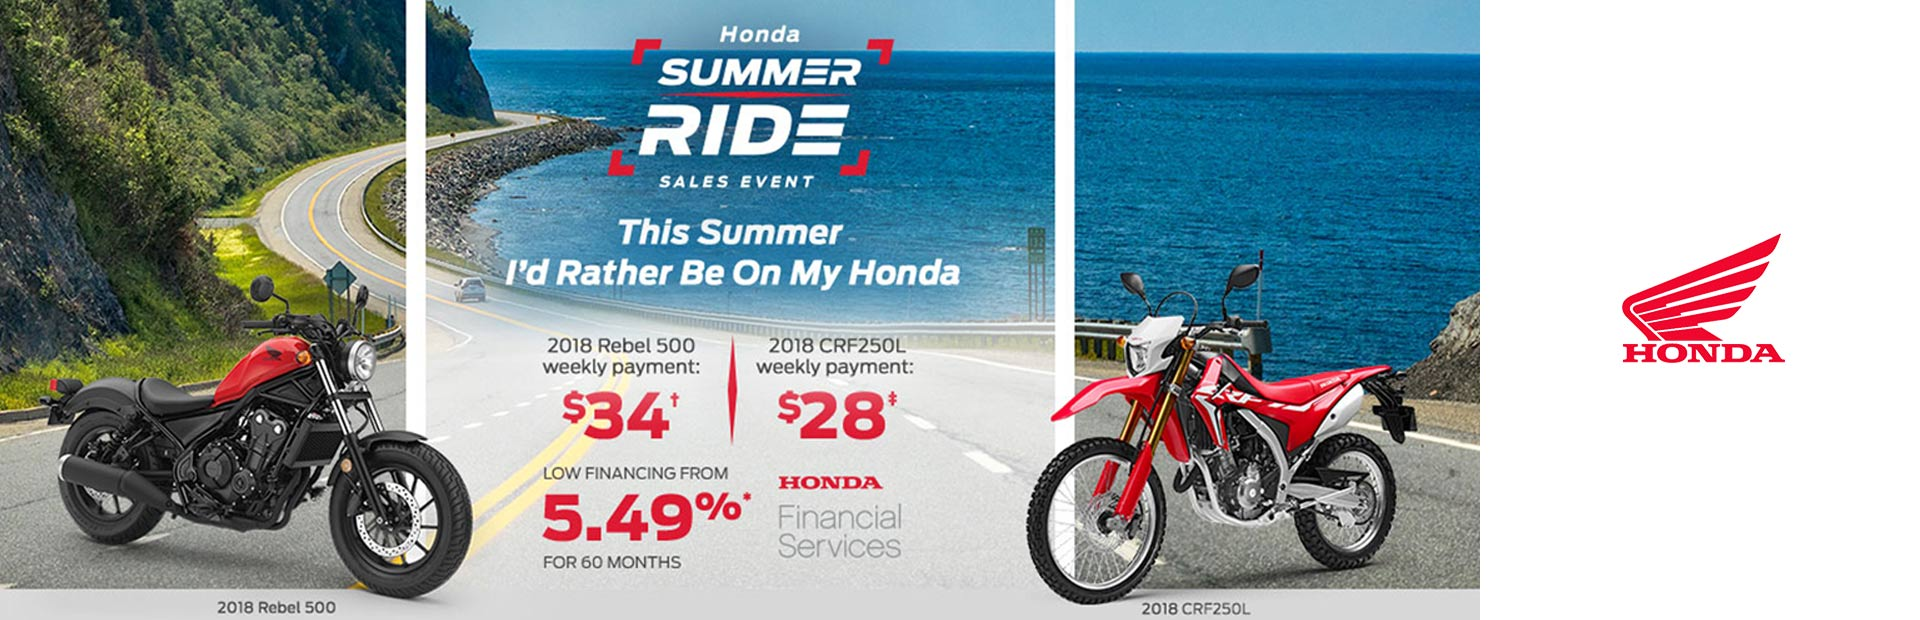 Honda: Summer Ride Sales Event